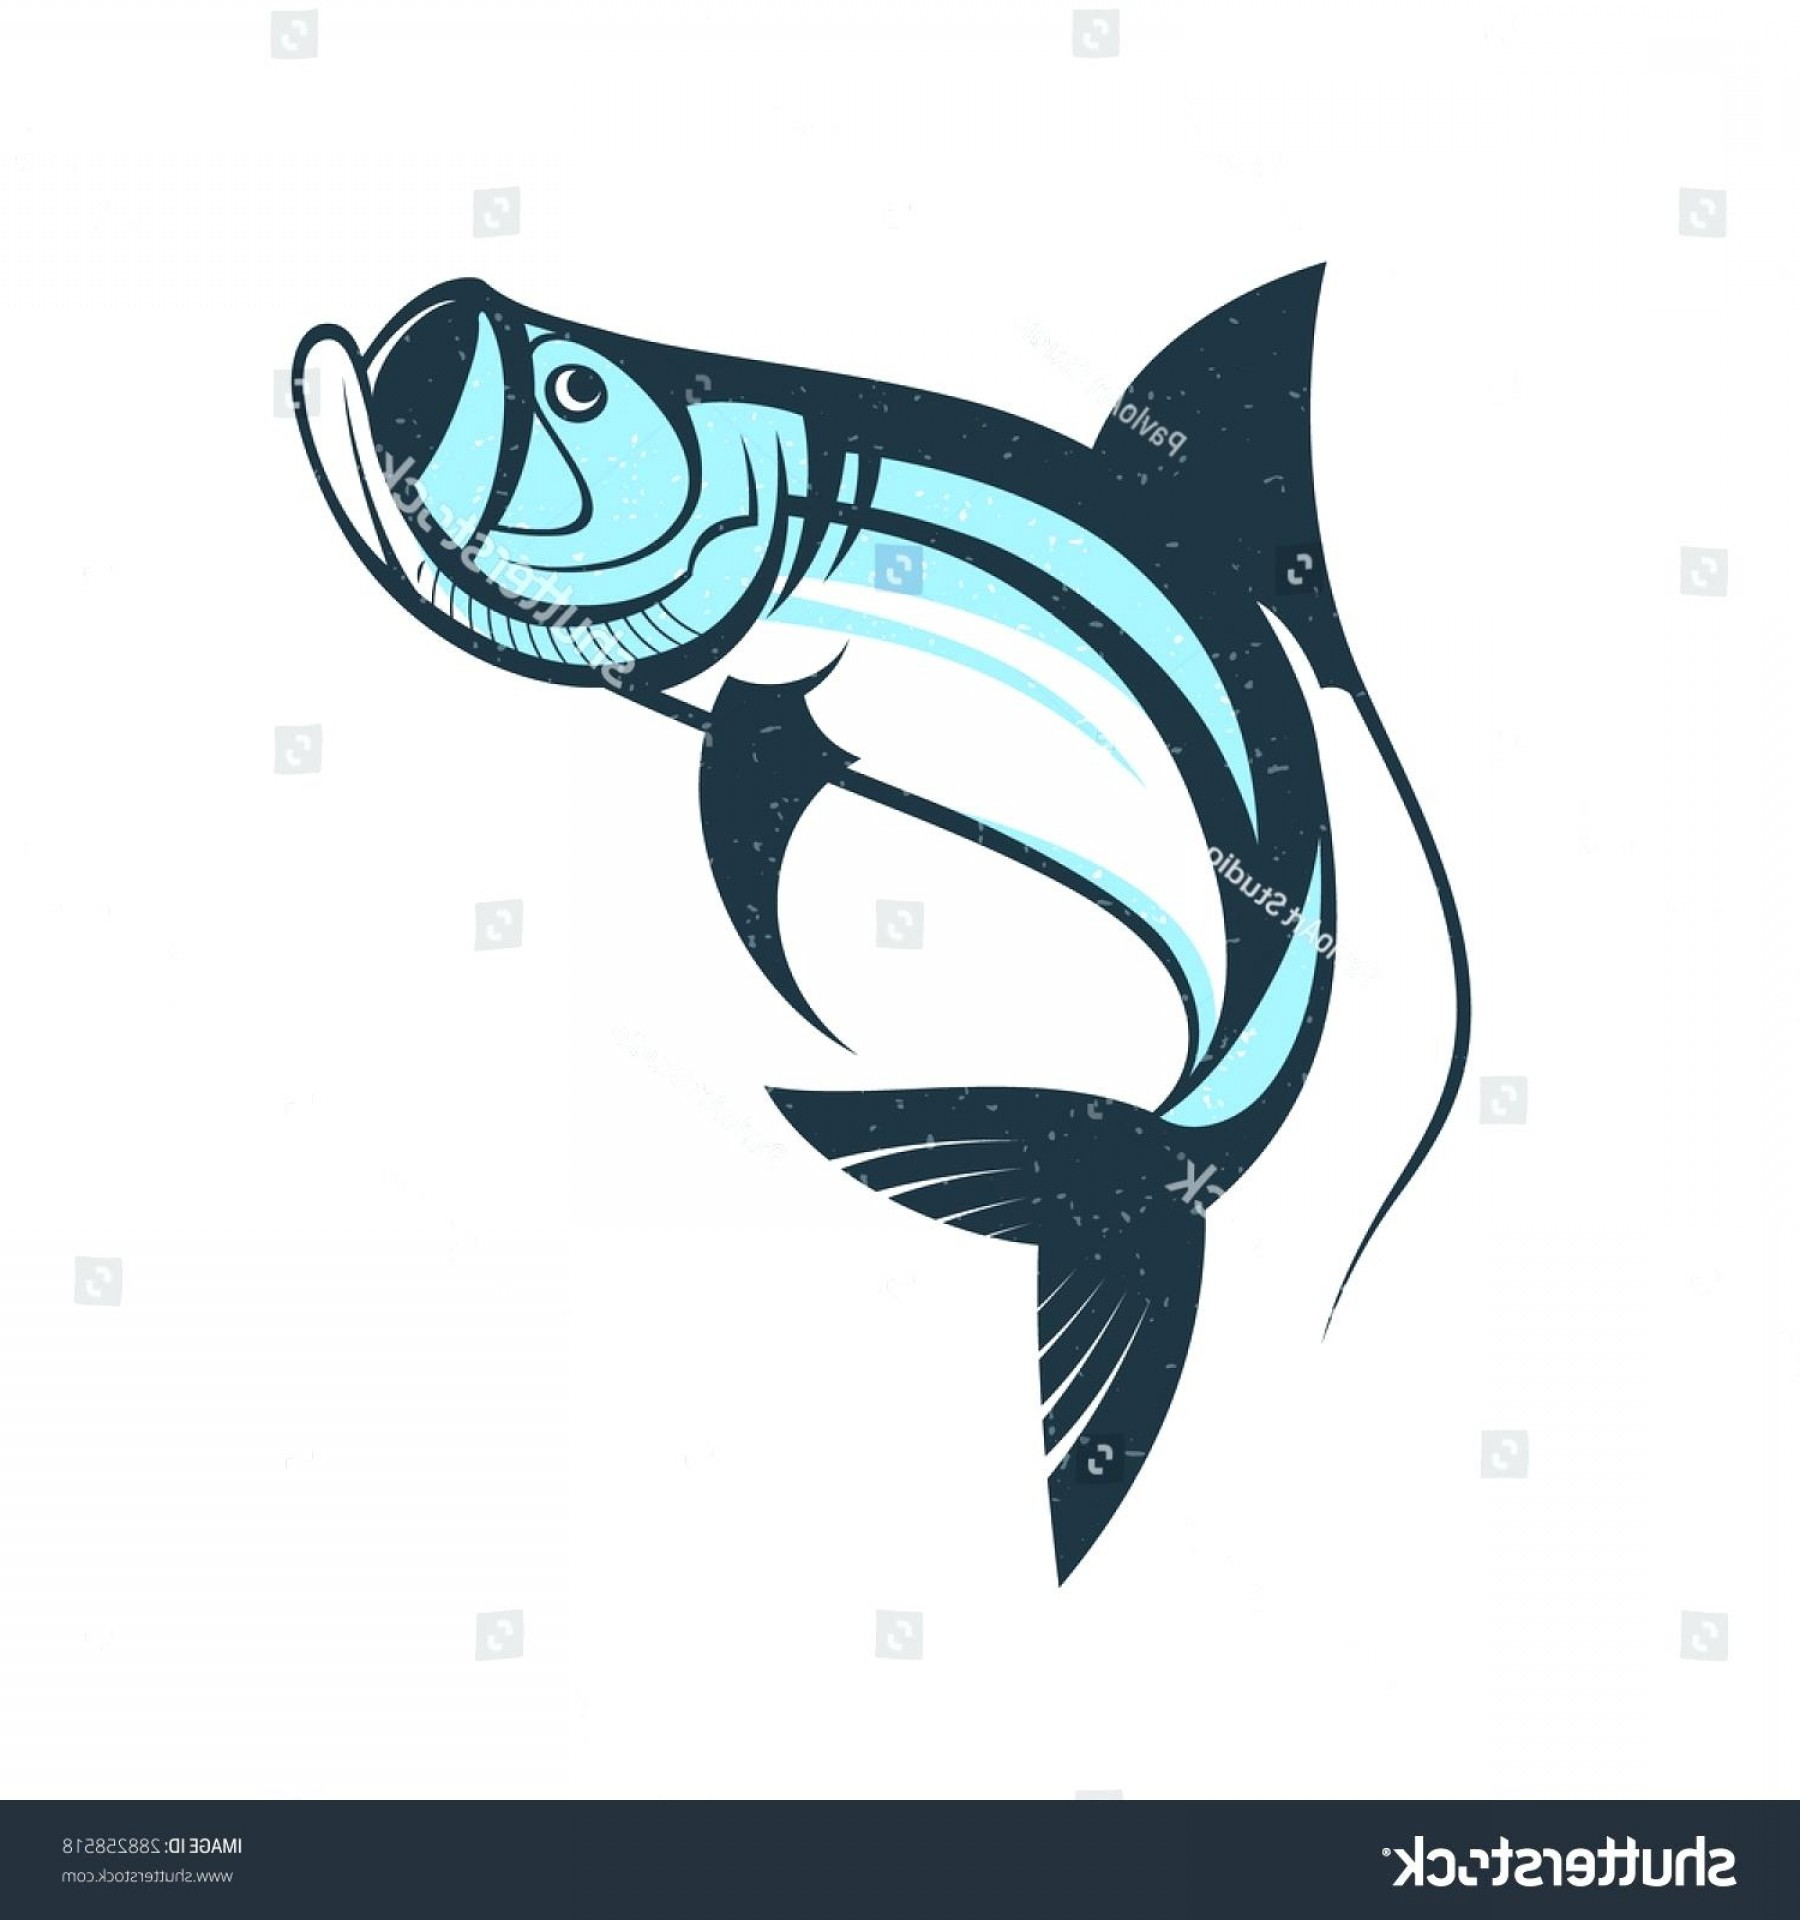 Shark Logo Vector: Nail Polish Template Make Up Artist Business Card Vector Layout With Hand Drawn Illustrations Of Bottle